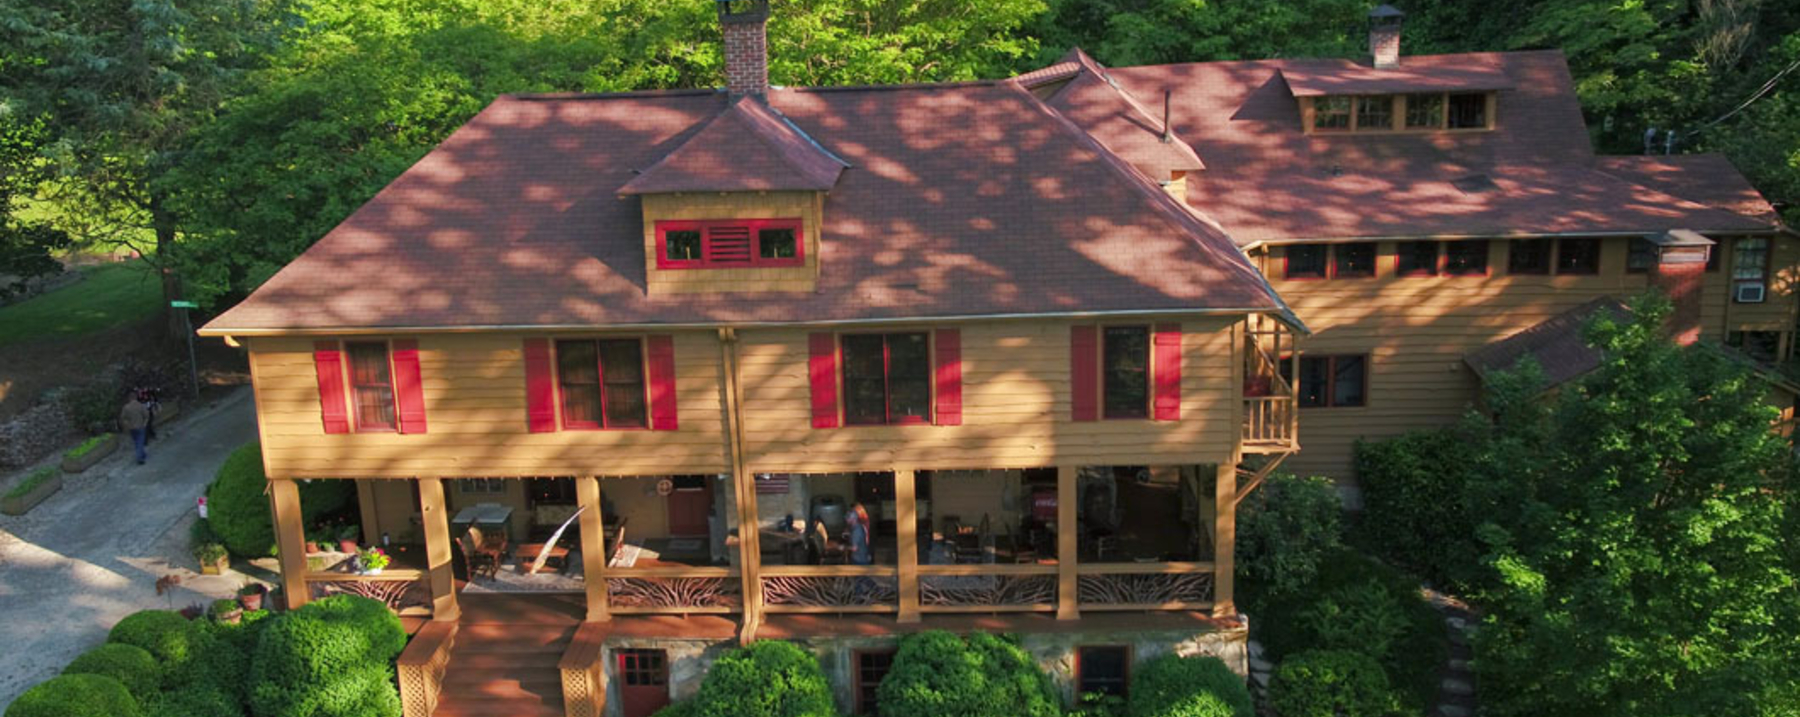 Image from Drone Flight over Beechwood Inn